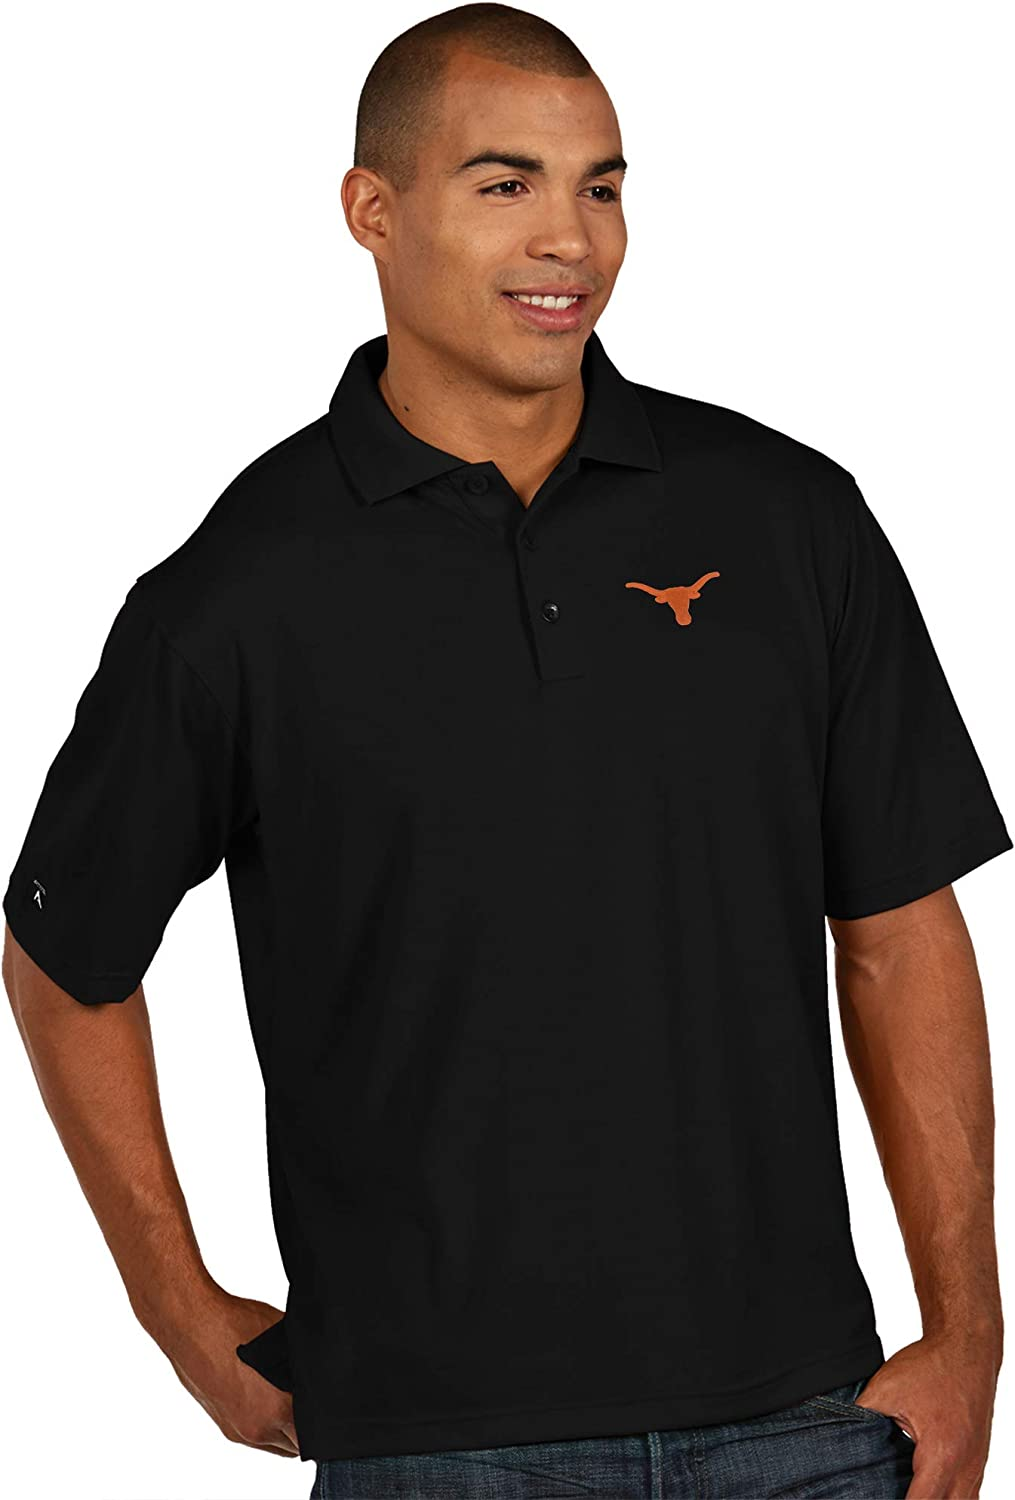 University of Texas Authentic Apparel NCAA Mens Pique Xtra Lite Polo